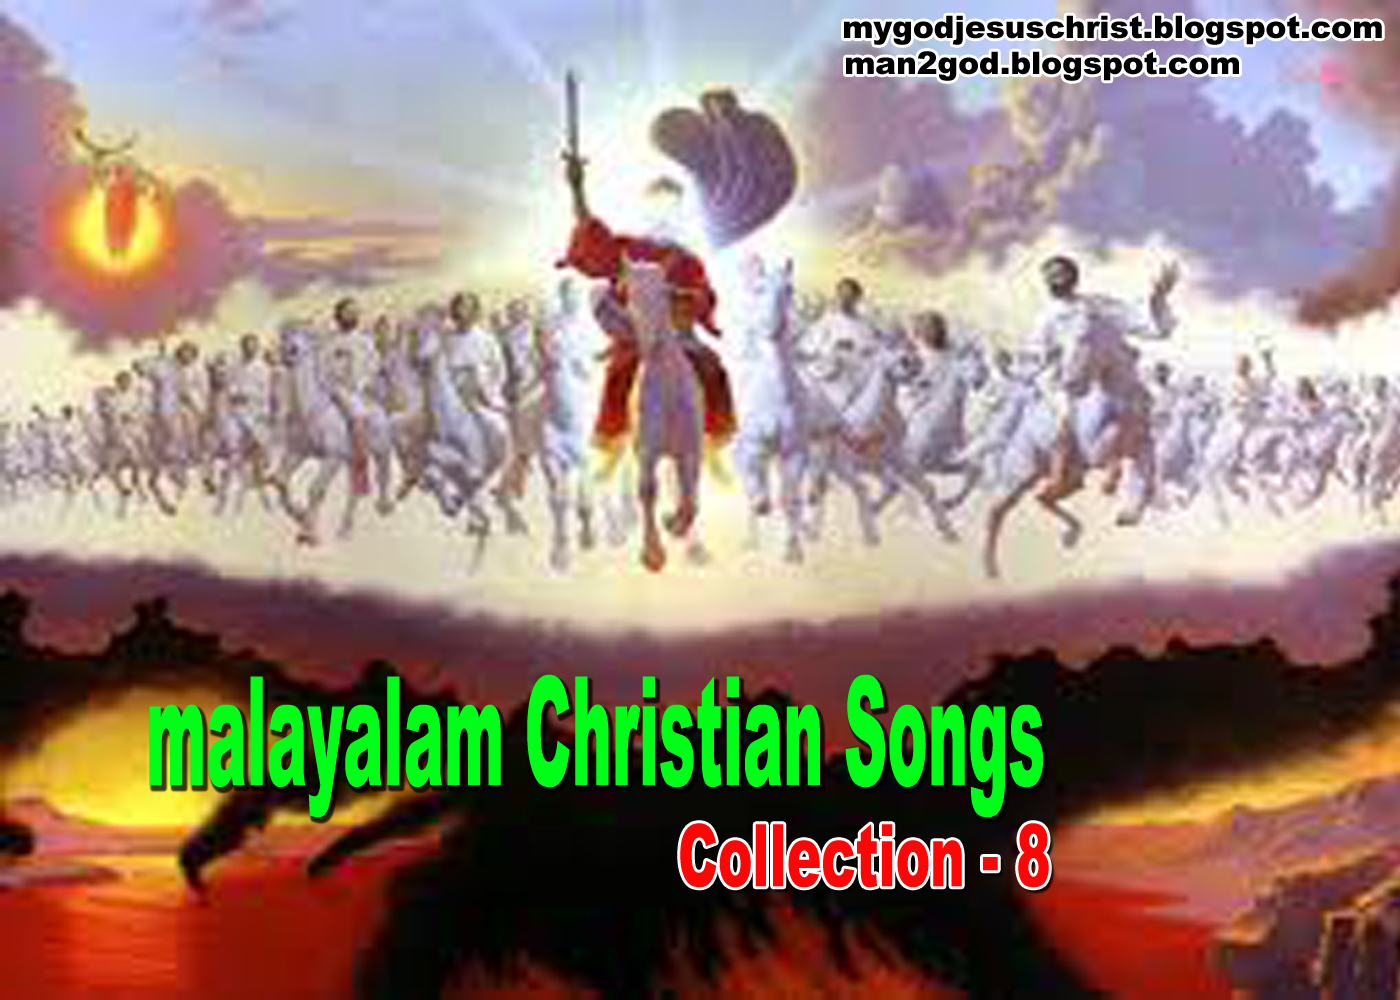 Tamil Christian Songs - download.cnet.com